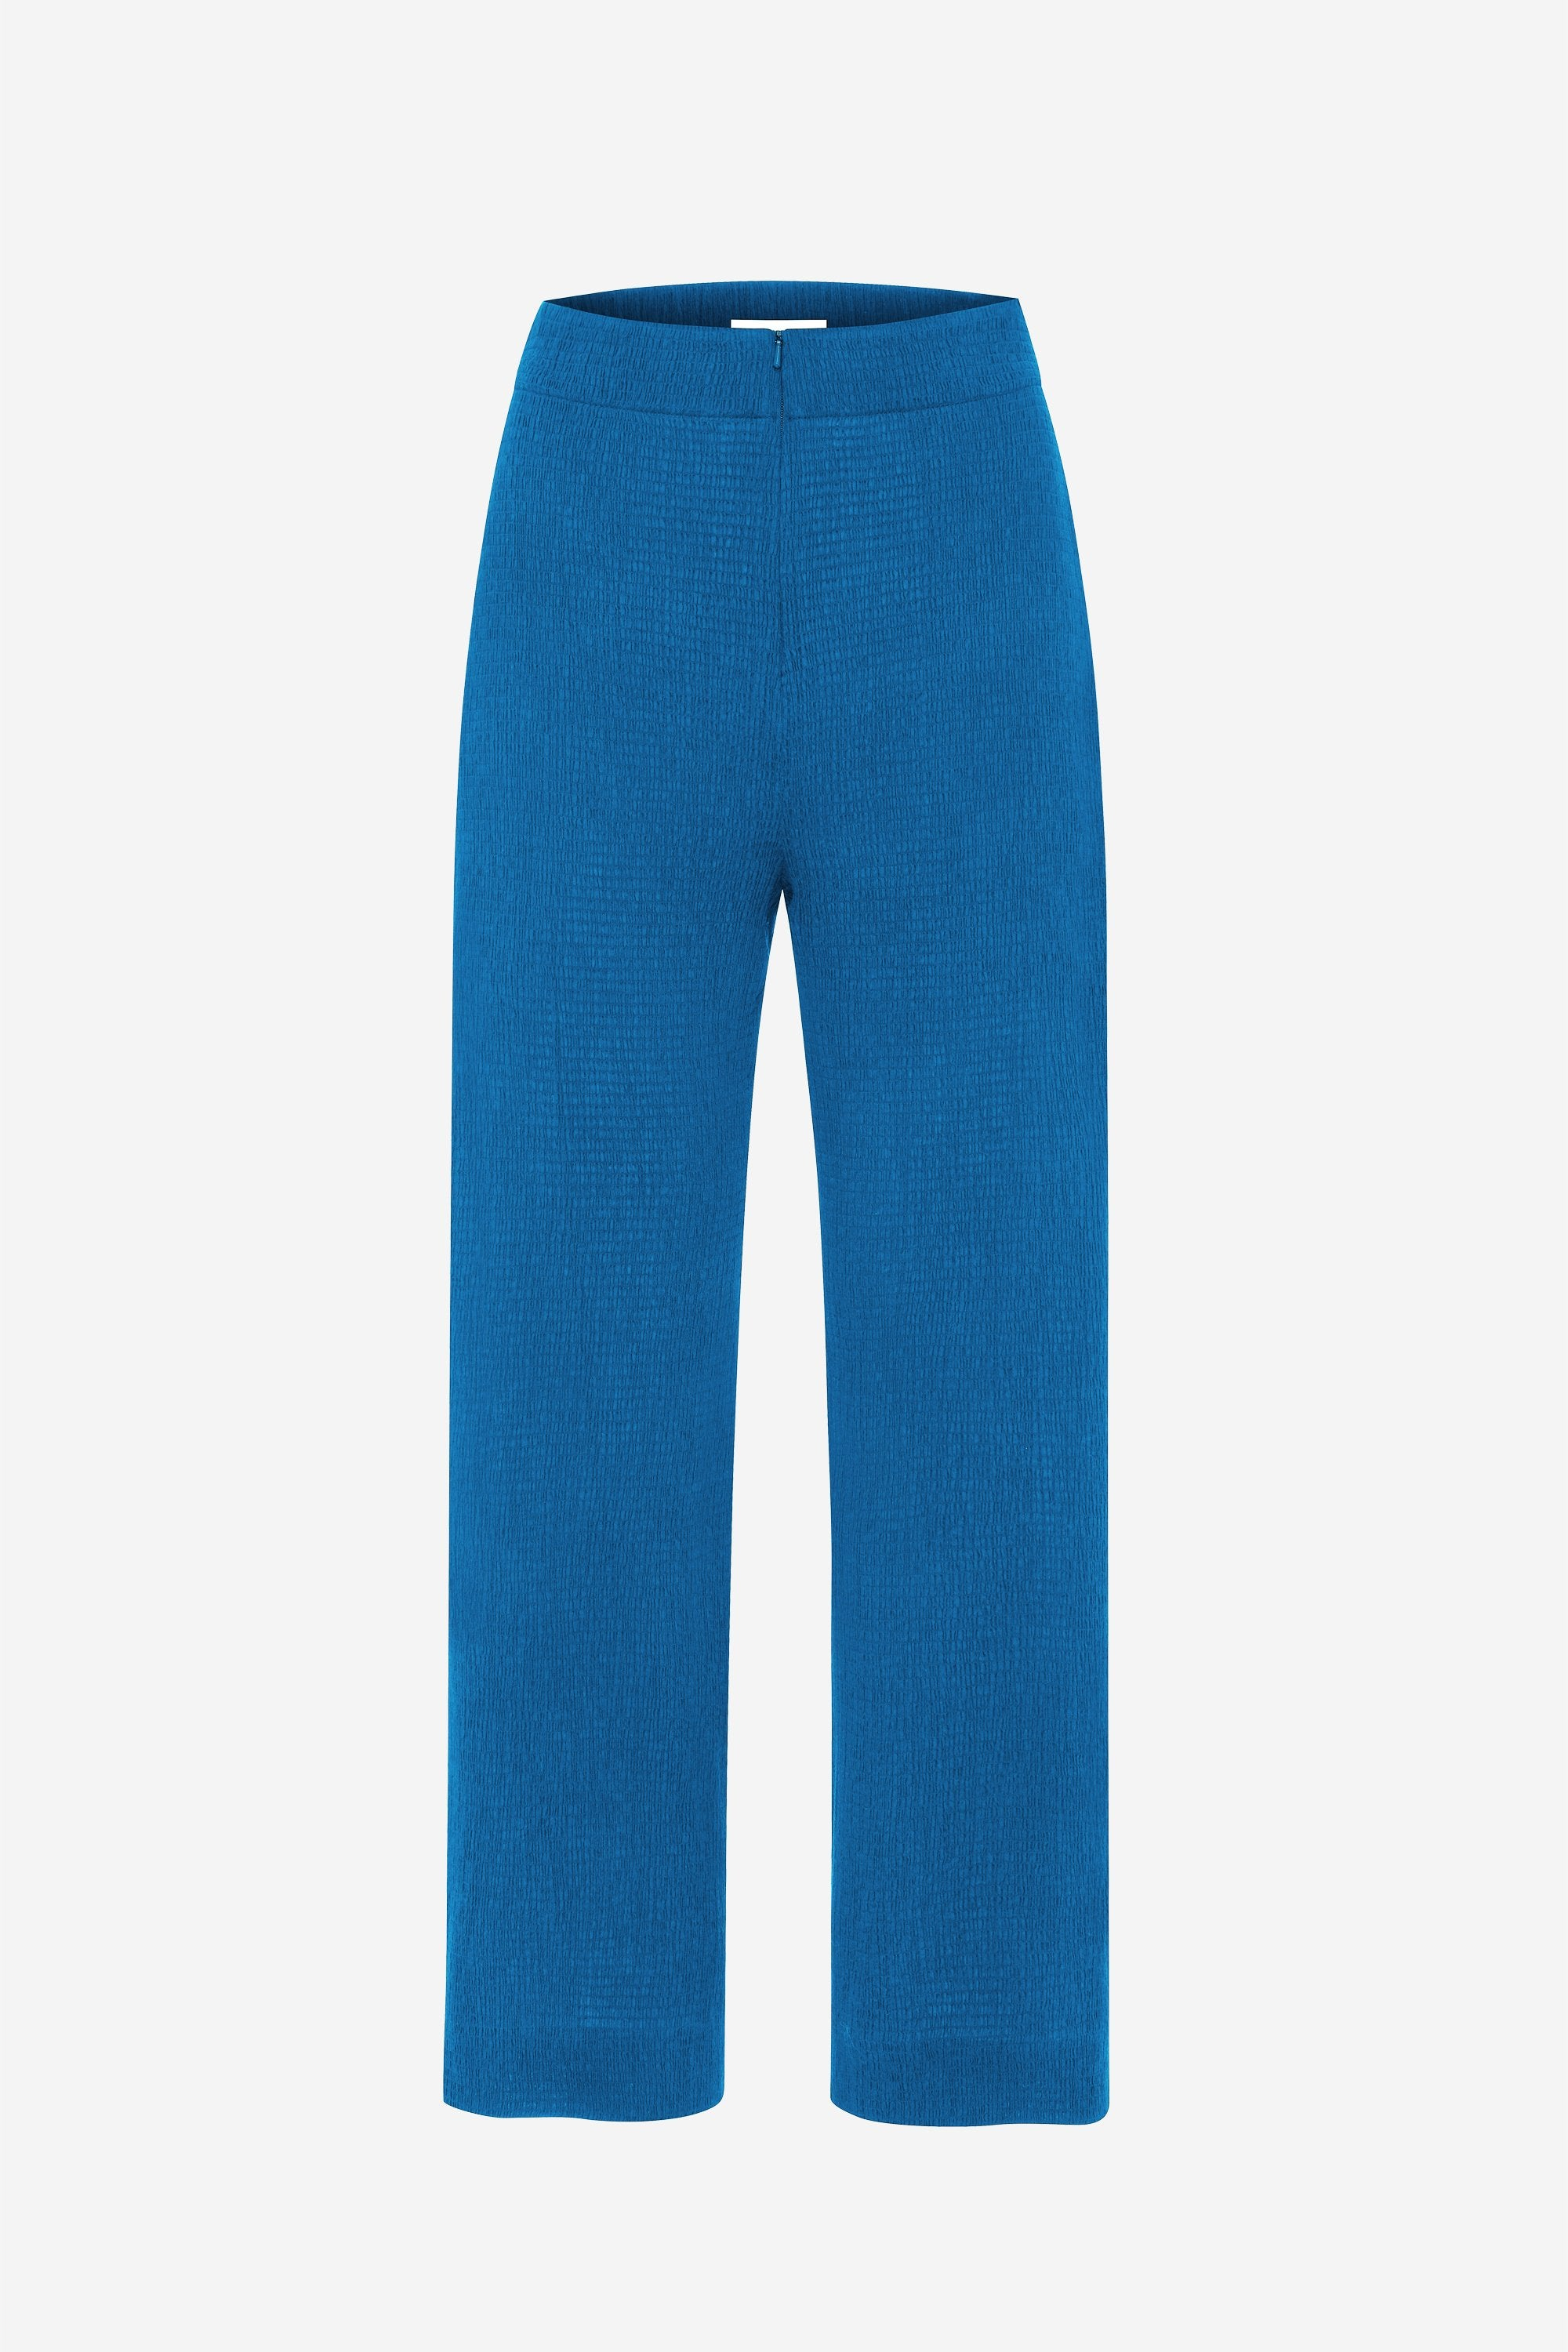 Invisible stretch pant - Shirred voile - True blue - Resortwear trouser - Her Line